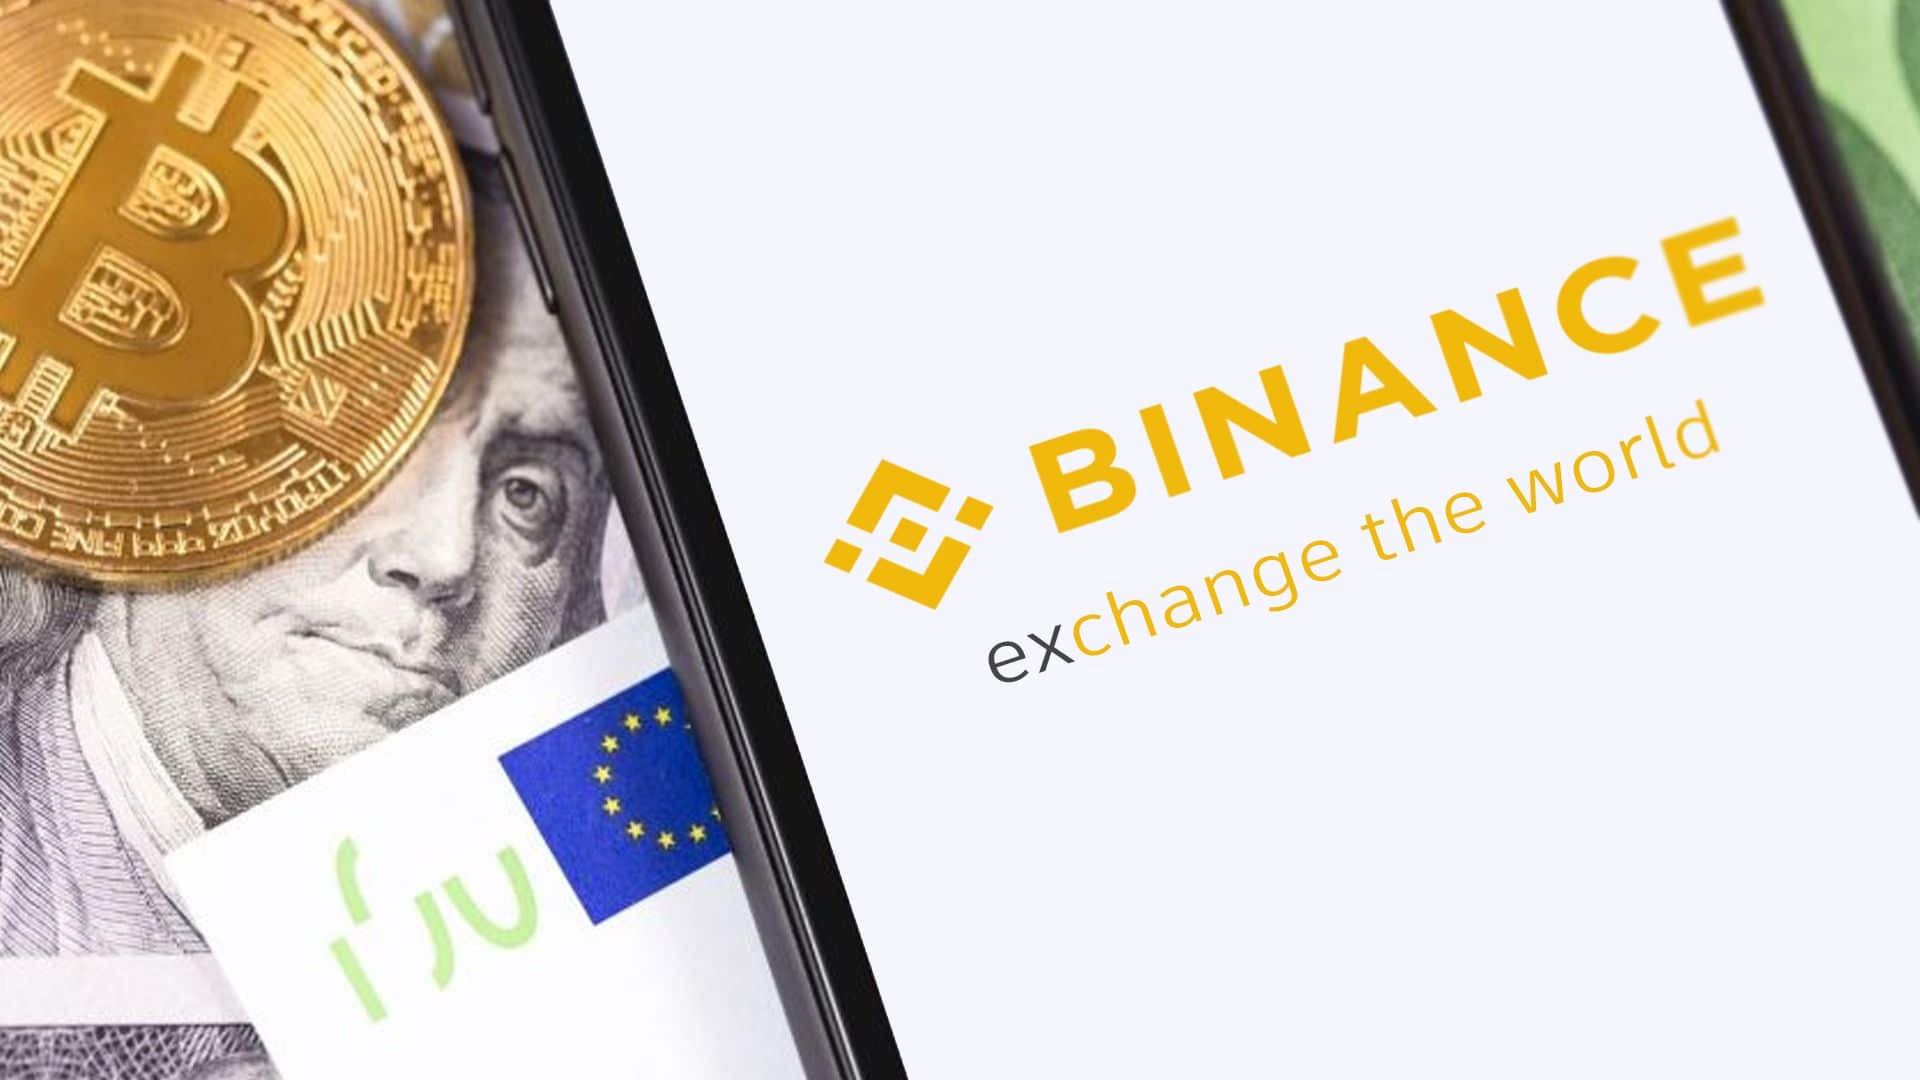 Moneda de Bitcoin, billete euros y app de binance